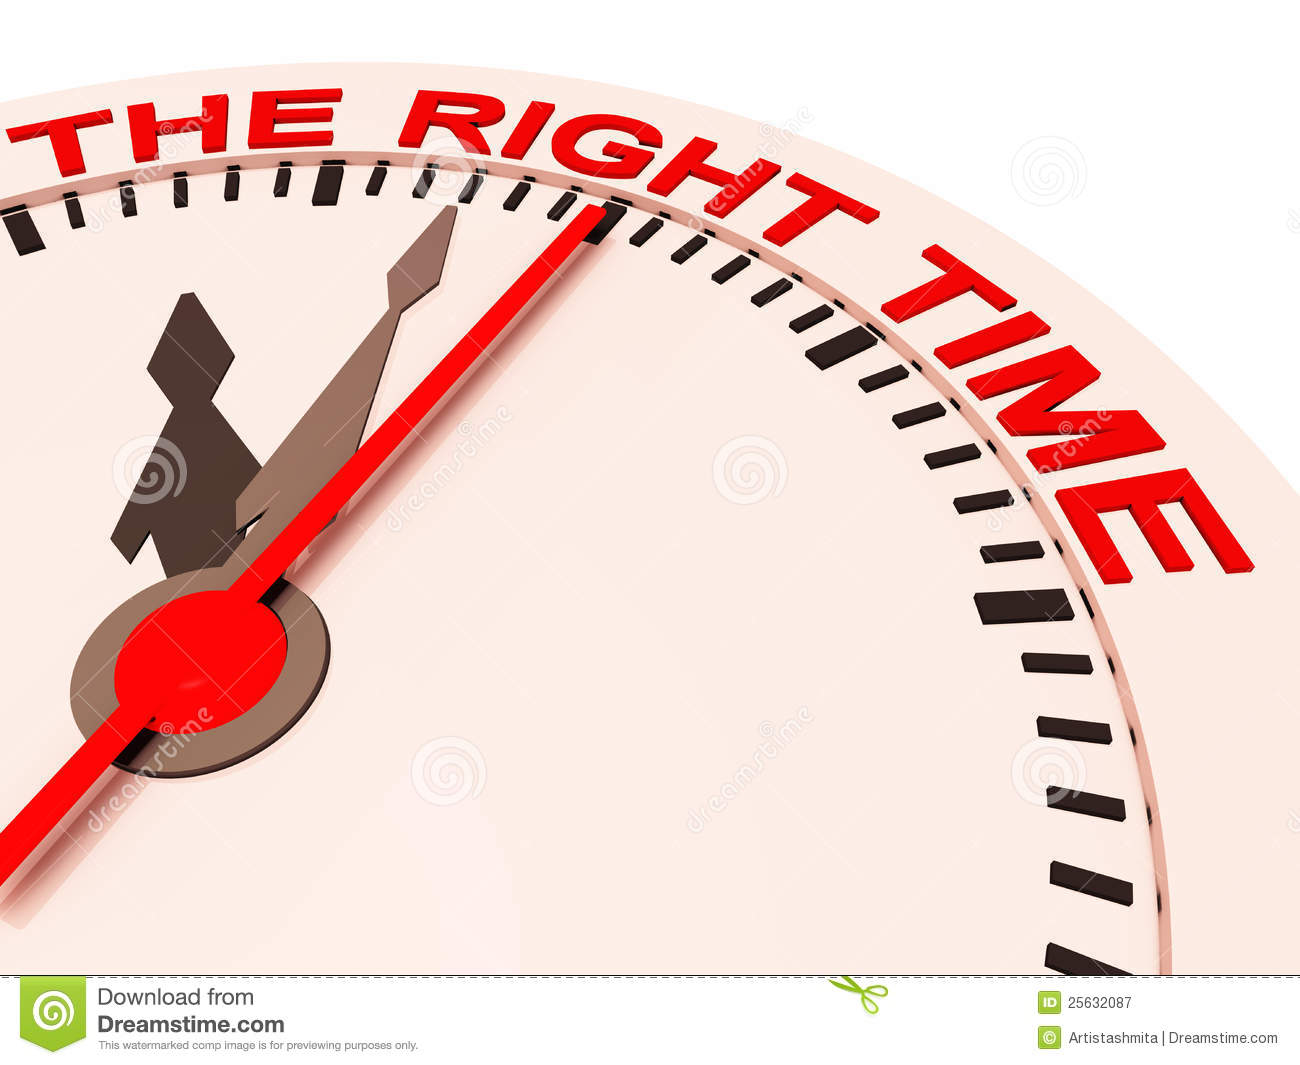 right time Lyrics to 'this is the right time' by lisa stansfield this is the right time to believe in love / everyone knows / if you don't demand, it shows / that you.